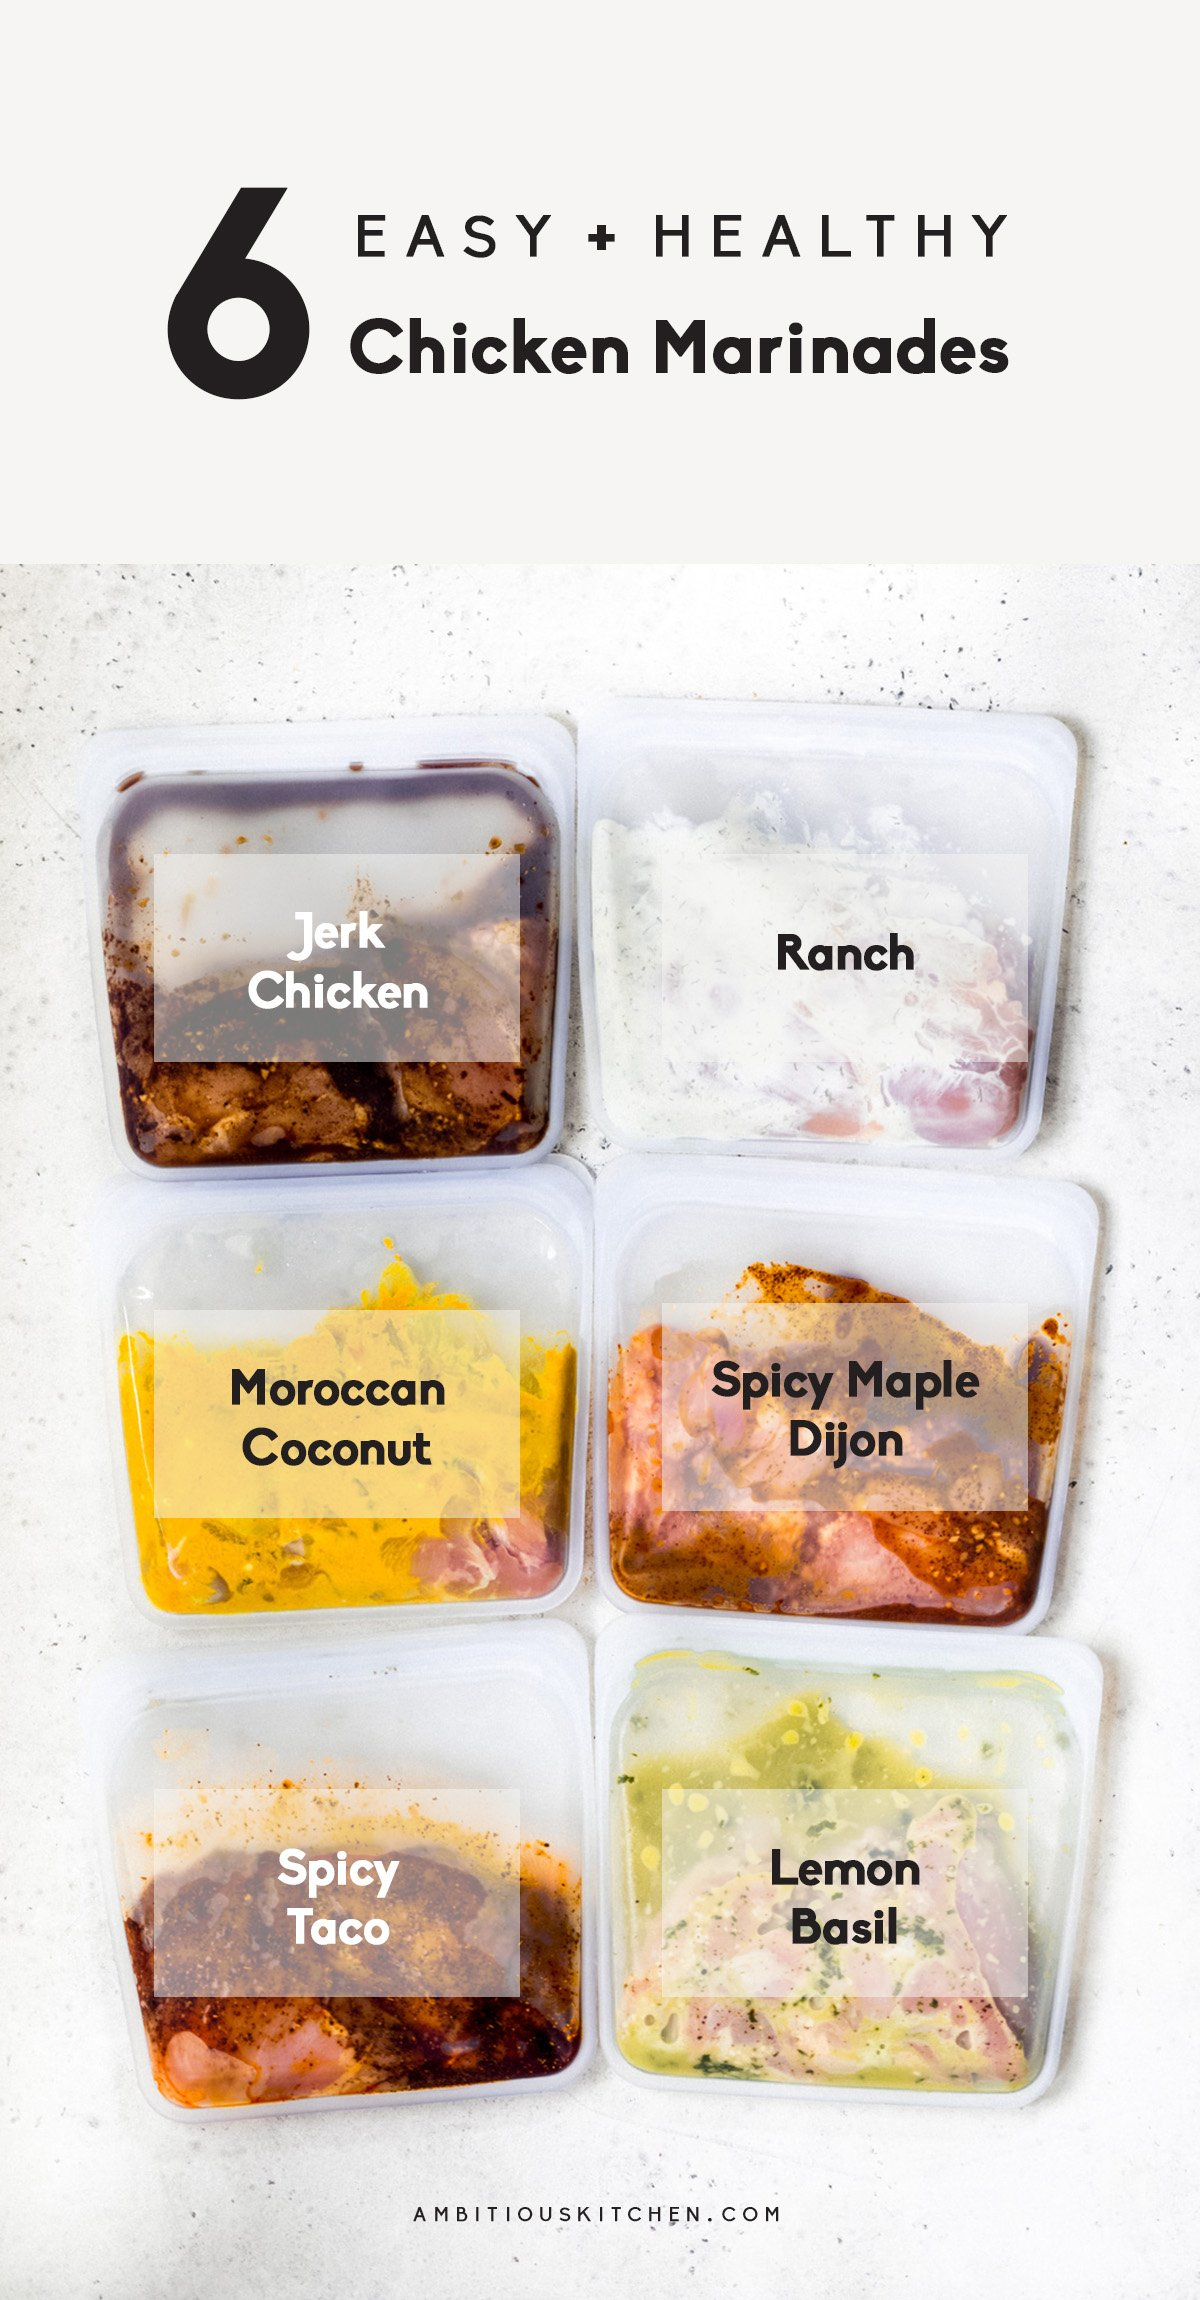 6 of the best easy and healthy chicken marinades